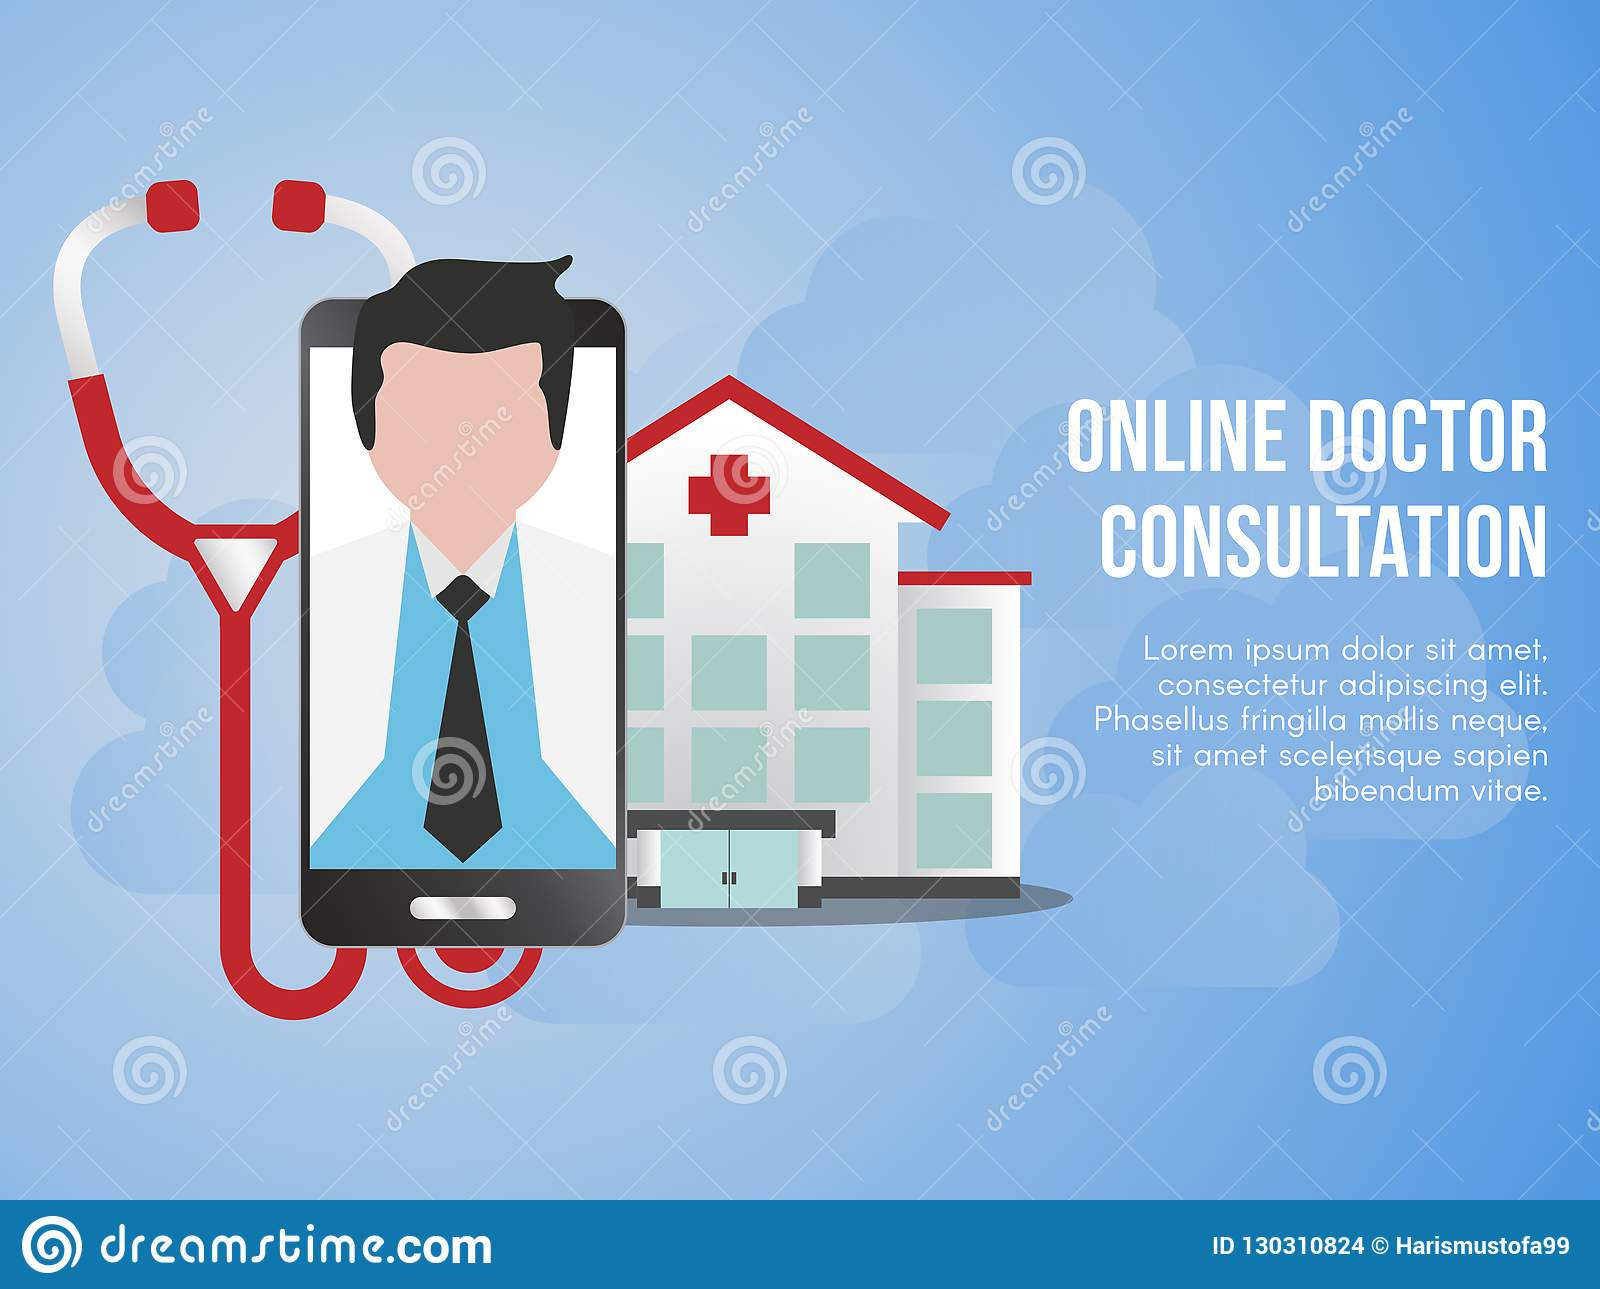 Doctor Consultation Banners Winter Holiday Banners